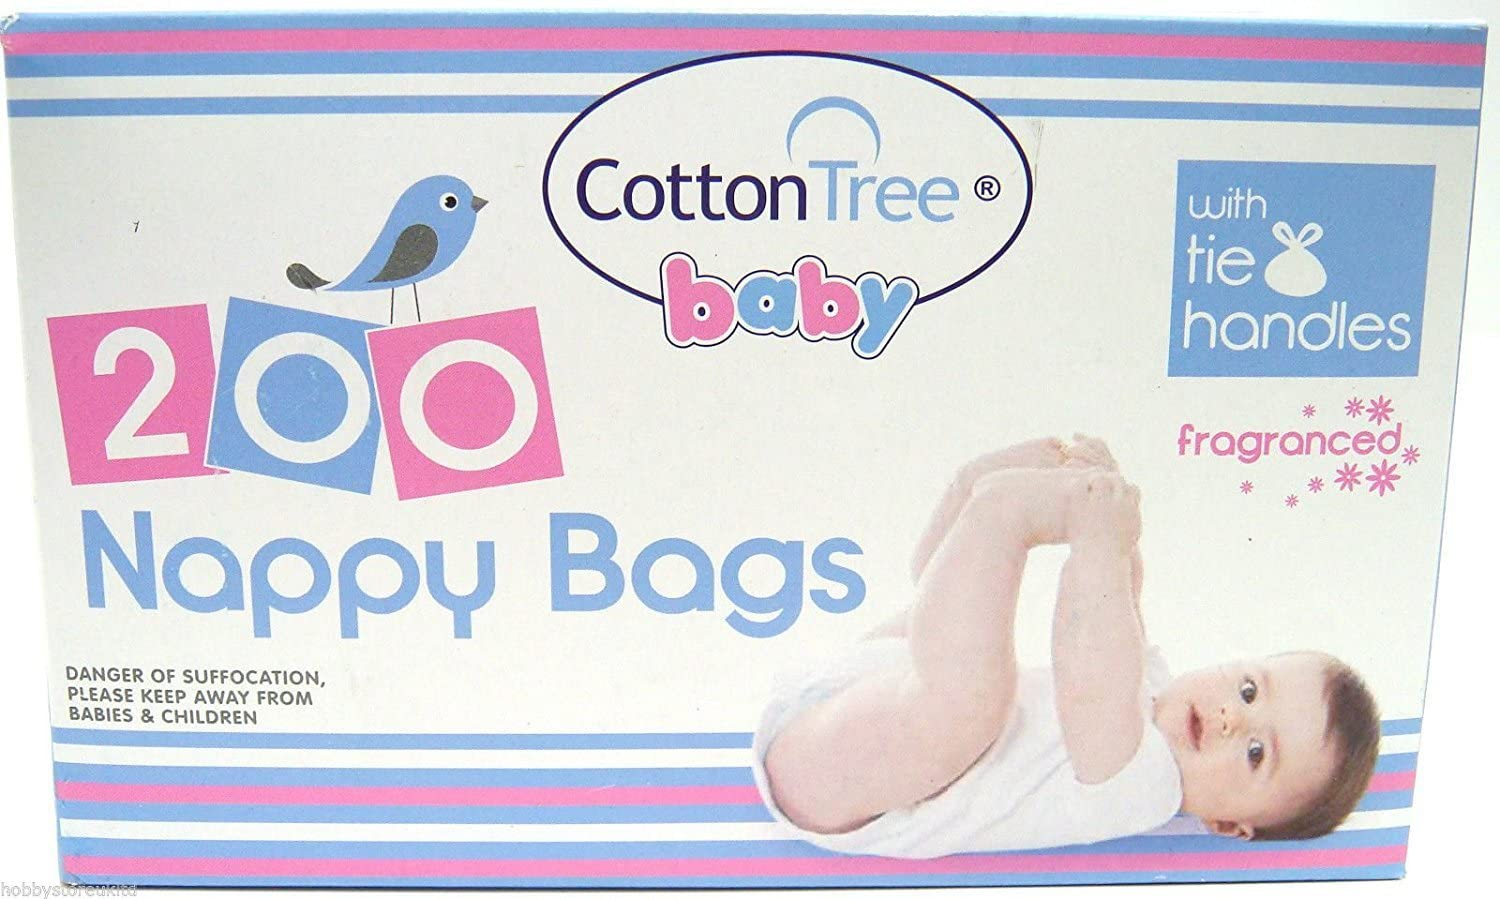 Disposable Nappy Bags fragranced 200 bags